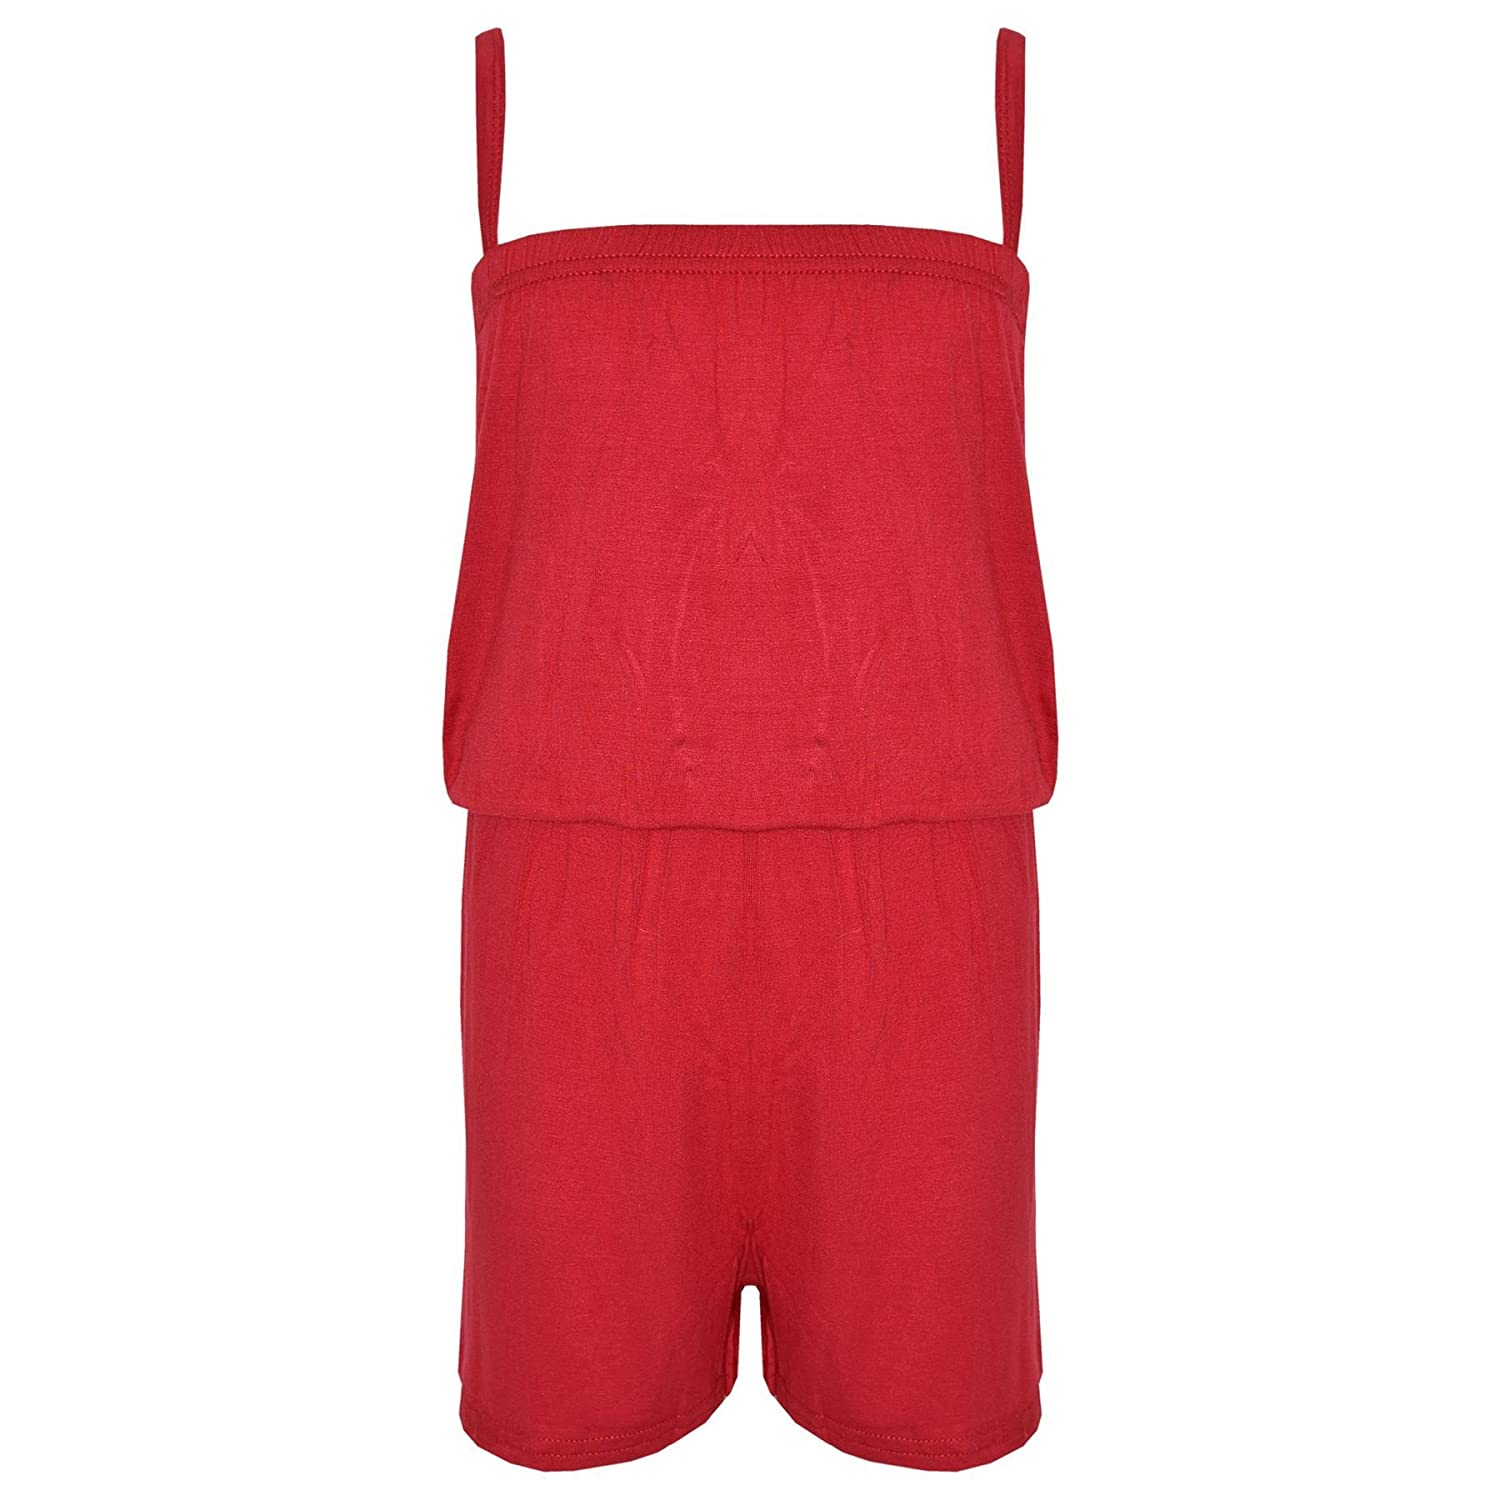 Kids Girls Plain Red Color Playsuit Trendy All in One Jumpsuit New Age 5-13 Yr